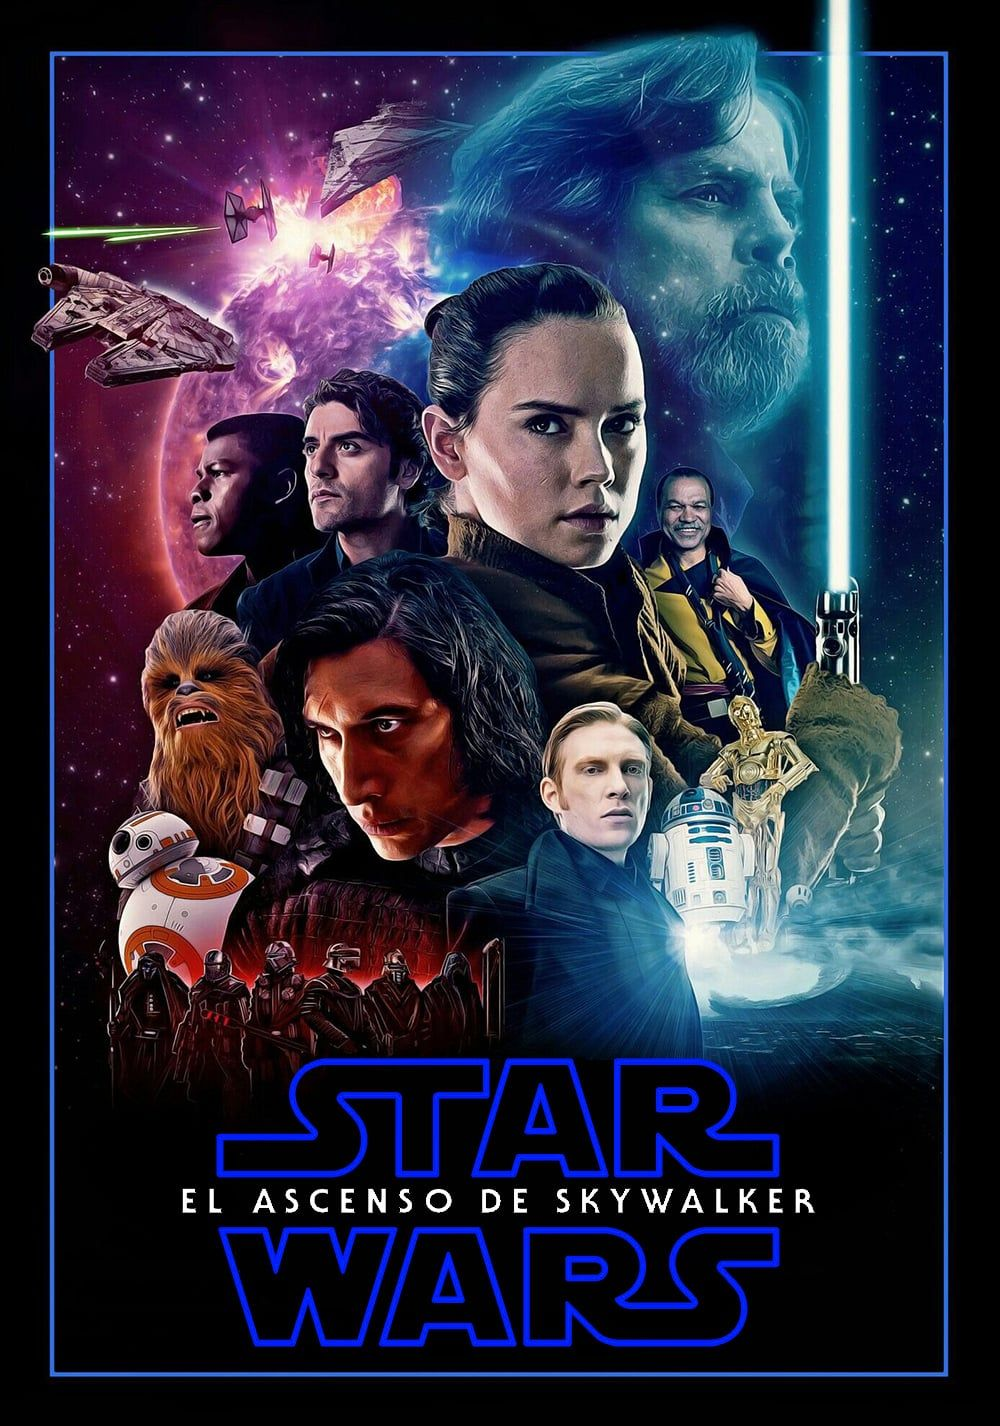 Watch The Rise Of Skywalker Star Wars Movie Illustrations De Star Wars Star Wars Fan Art Star Wars